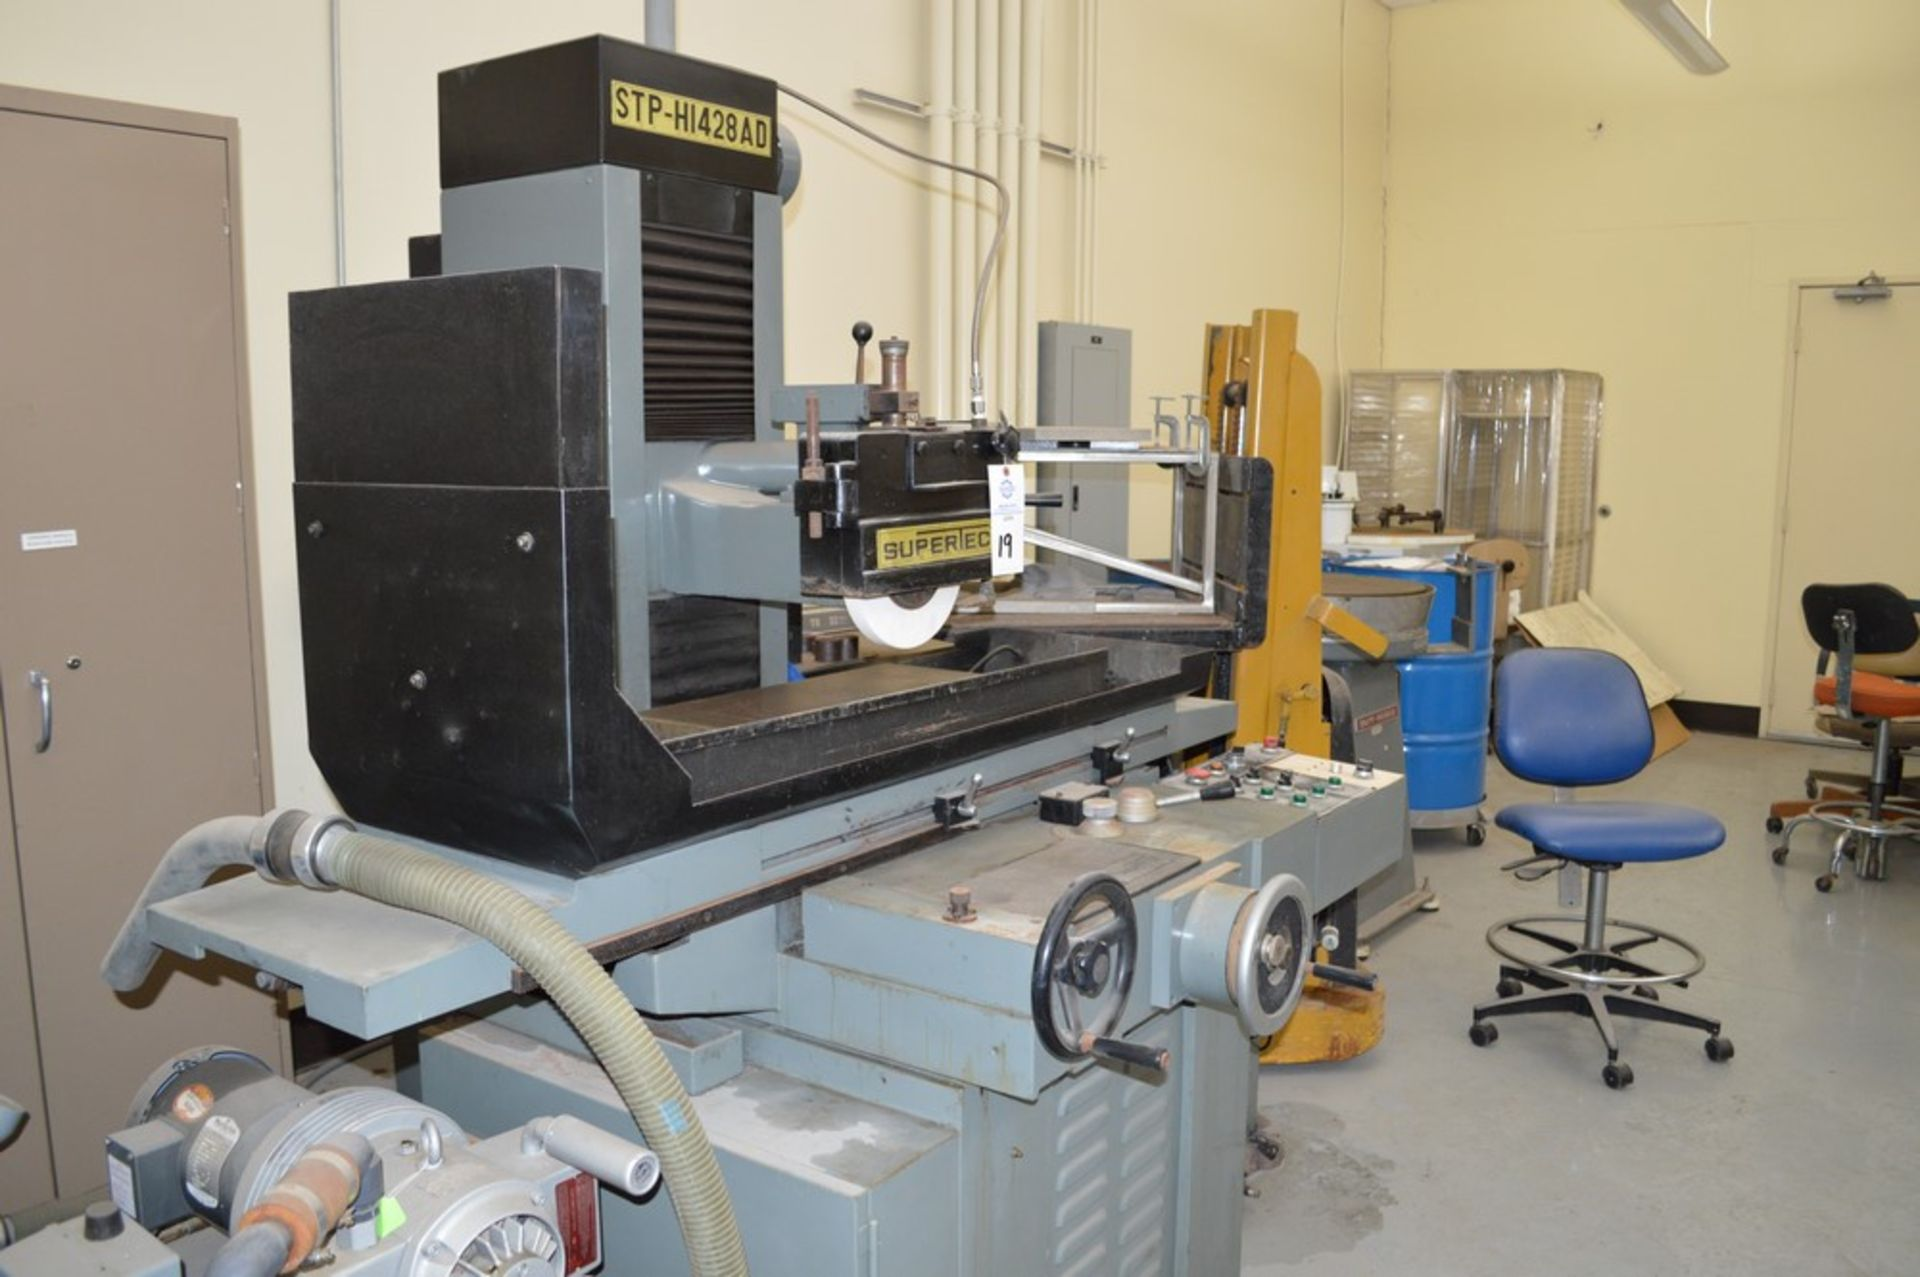 Supertec, STP-H1428 AD Grinder, Full three axis hydraulics, 12 x 27 magnetic chuck - Image 6 of 9